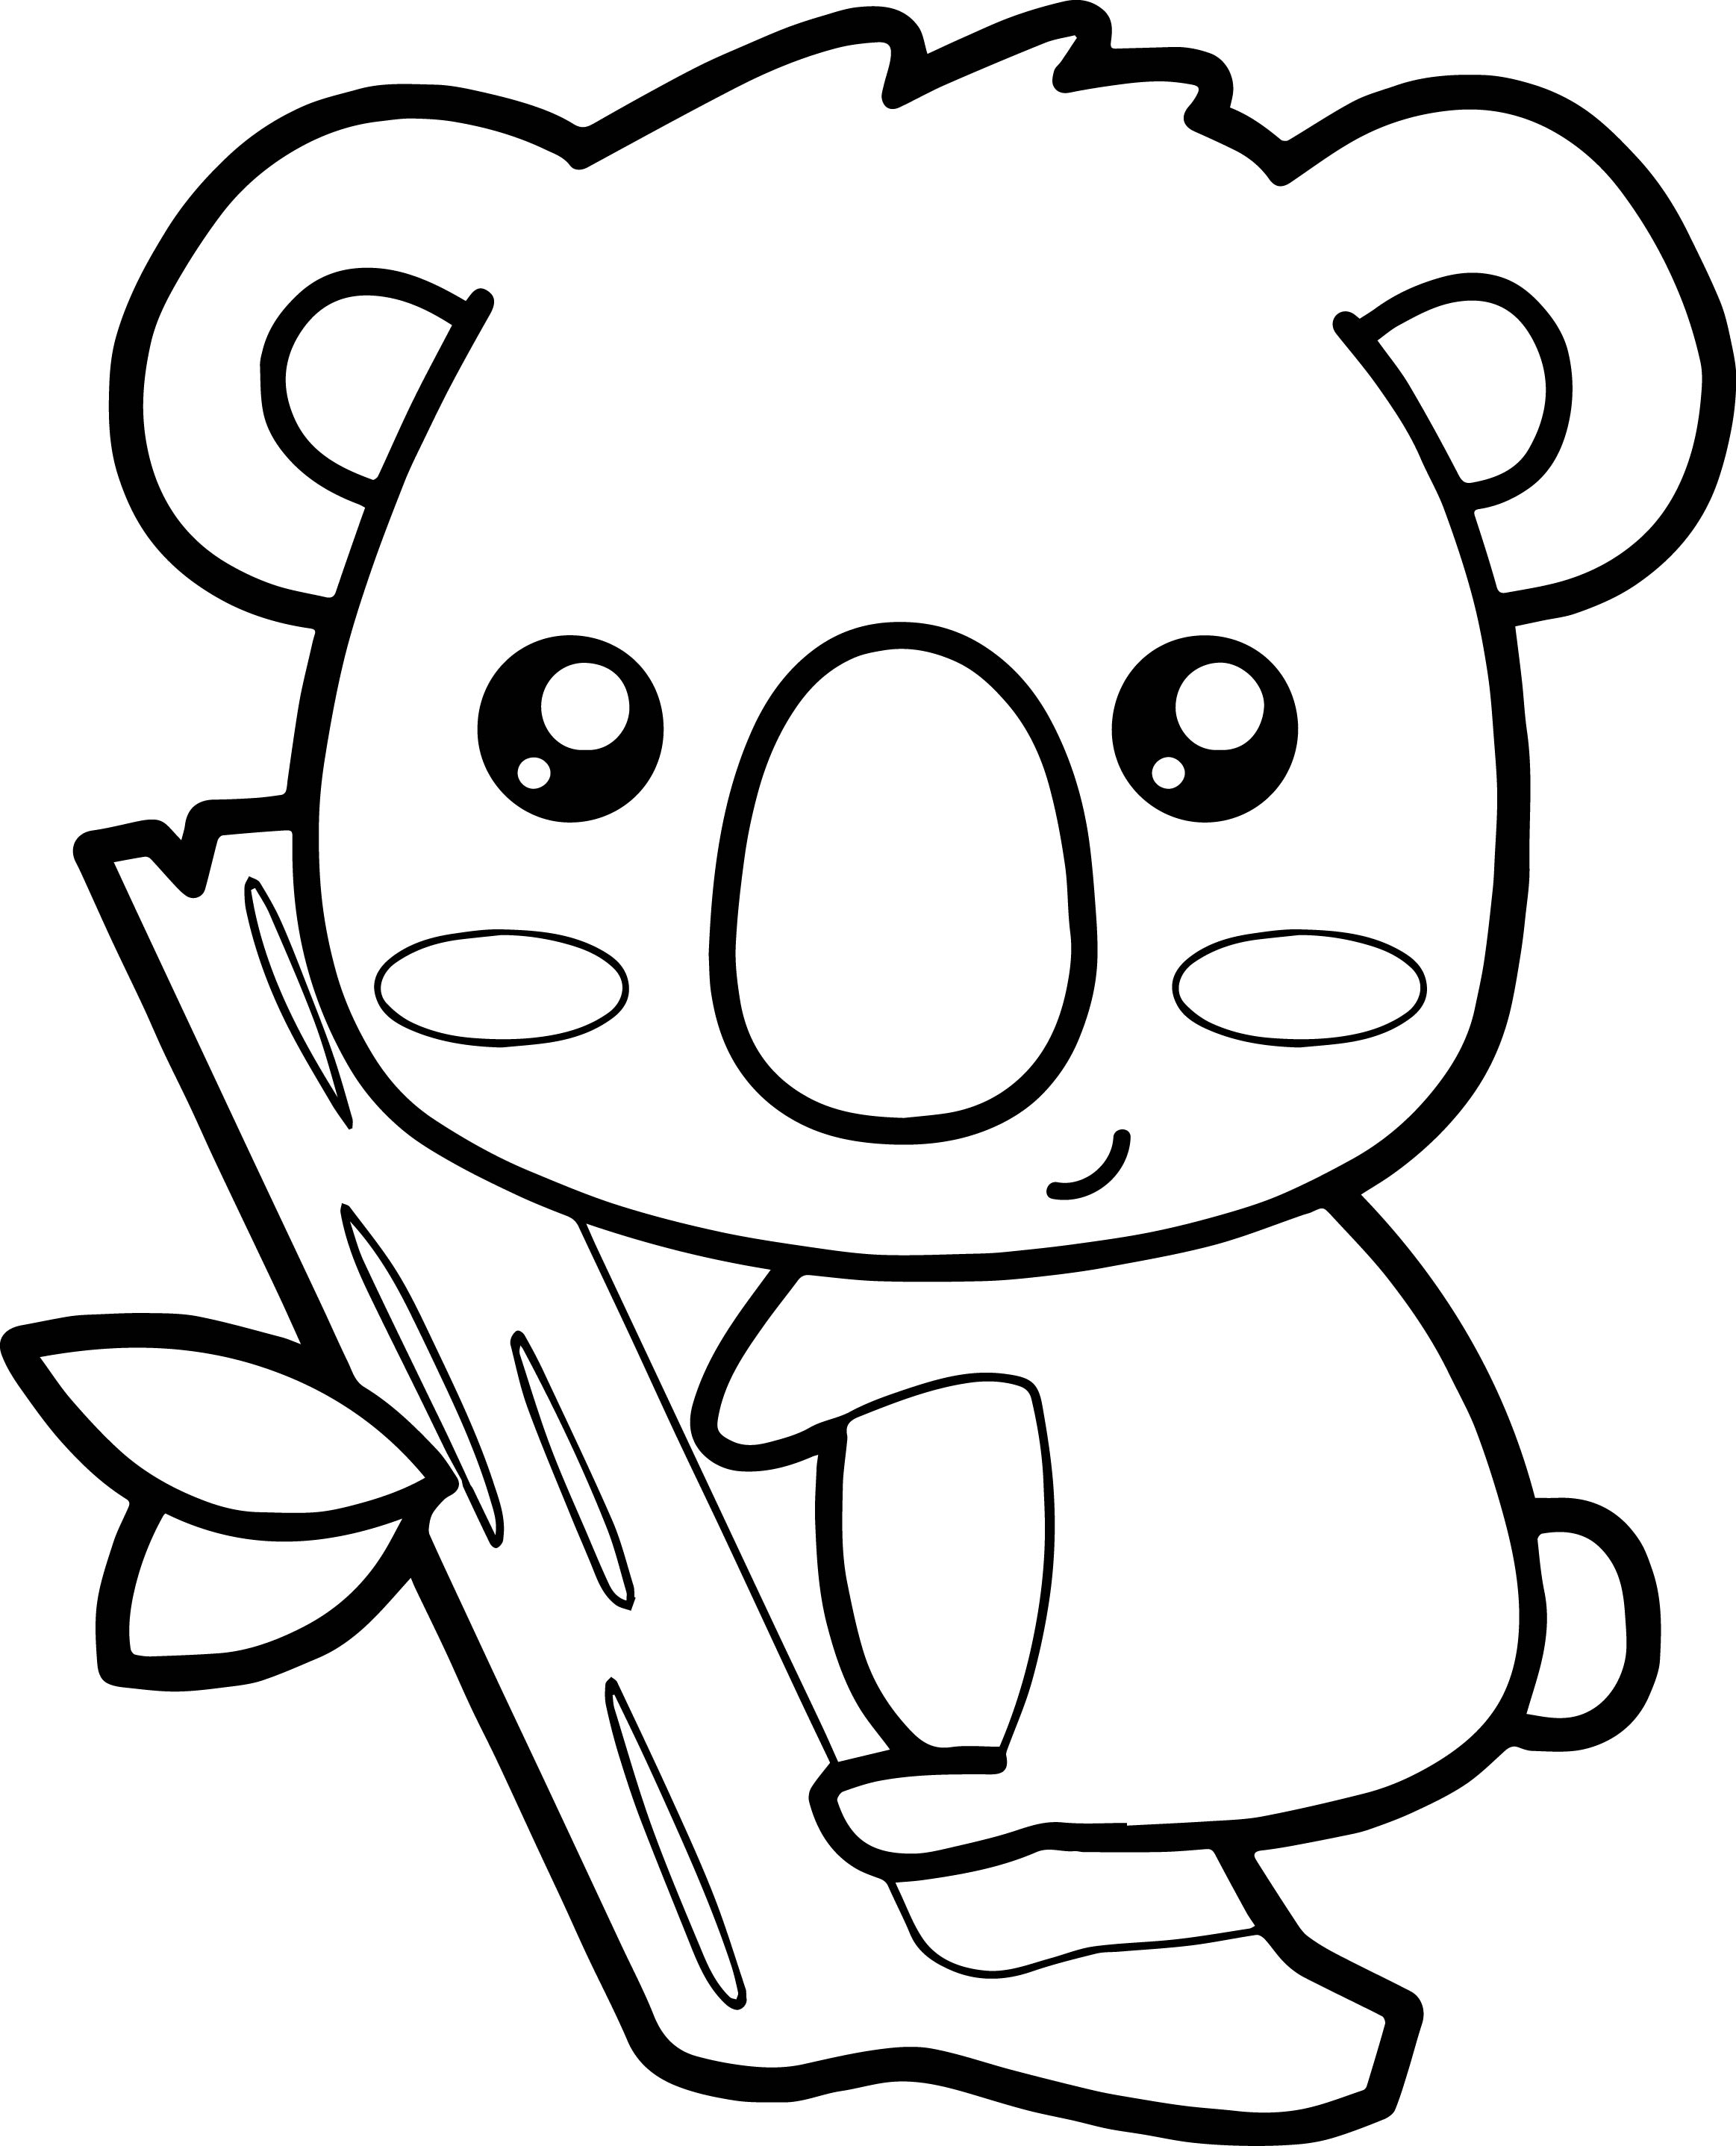 Koala Coloring Page Adult An Otter From Animals An Adult Coloring